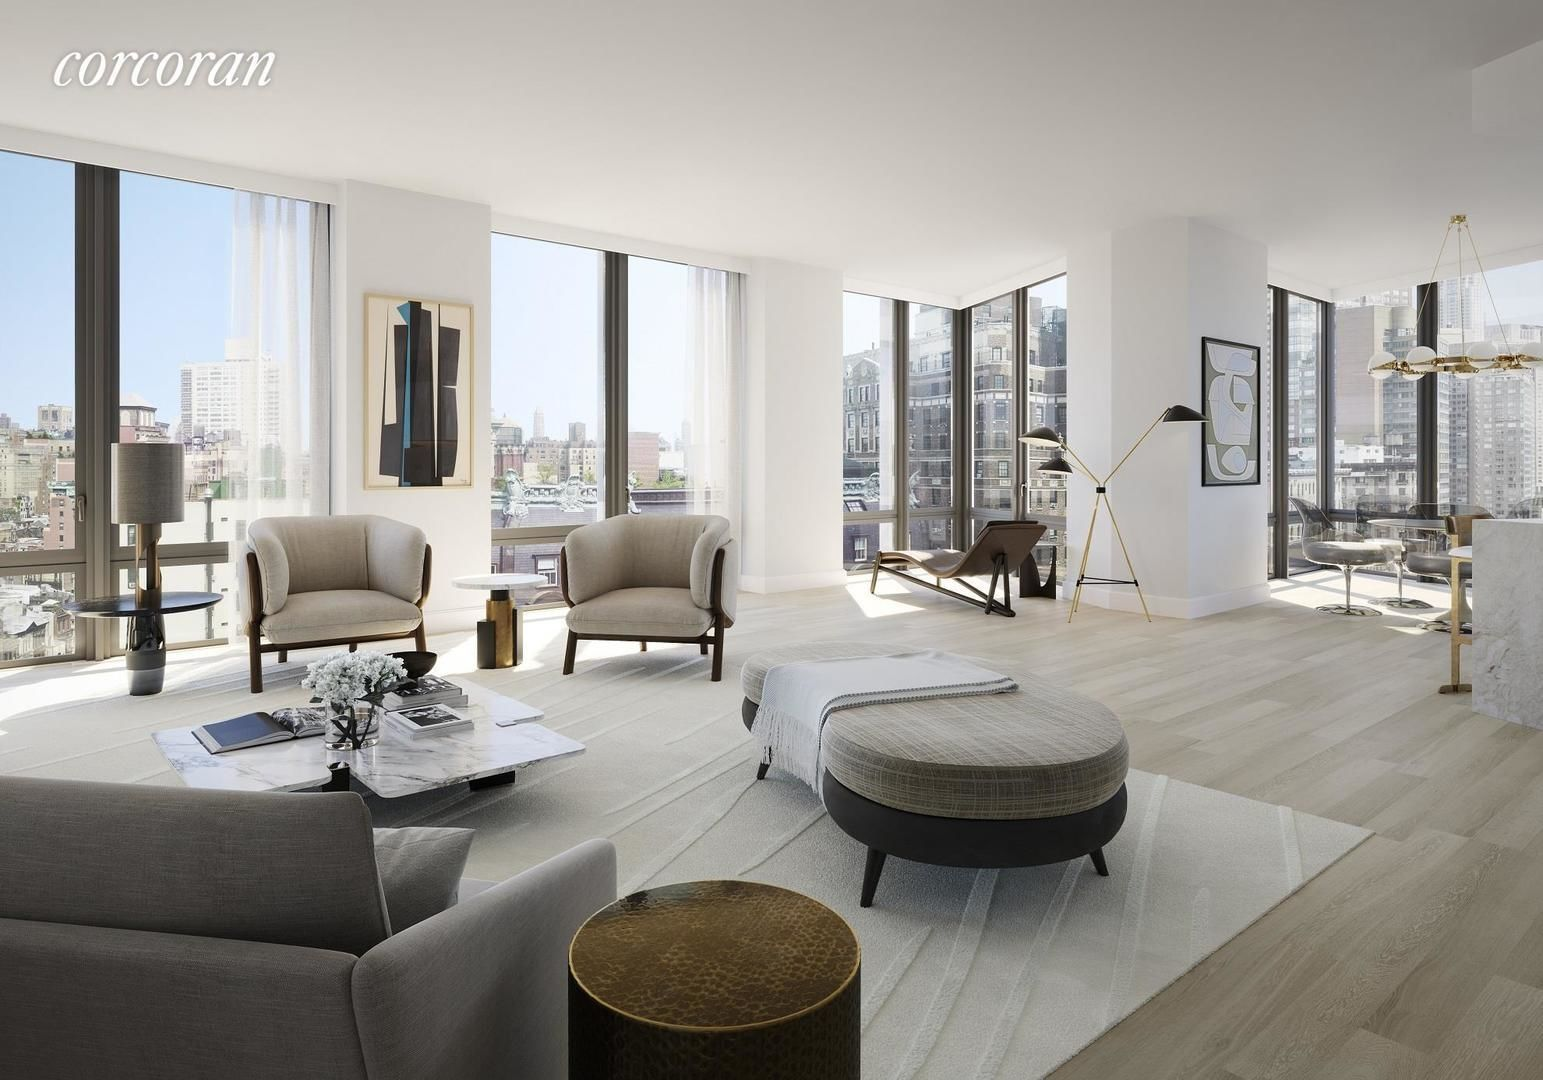 Apartment for sale at 212 West 72nd Street, Apt 4H